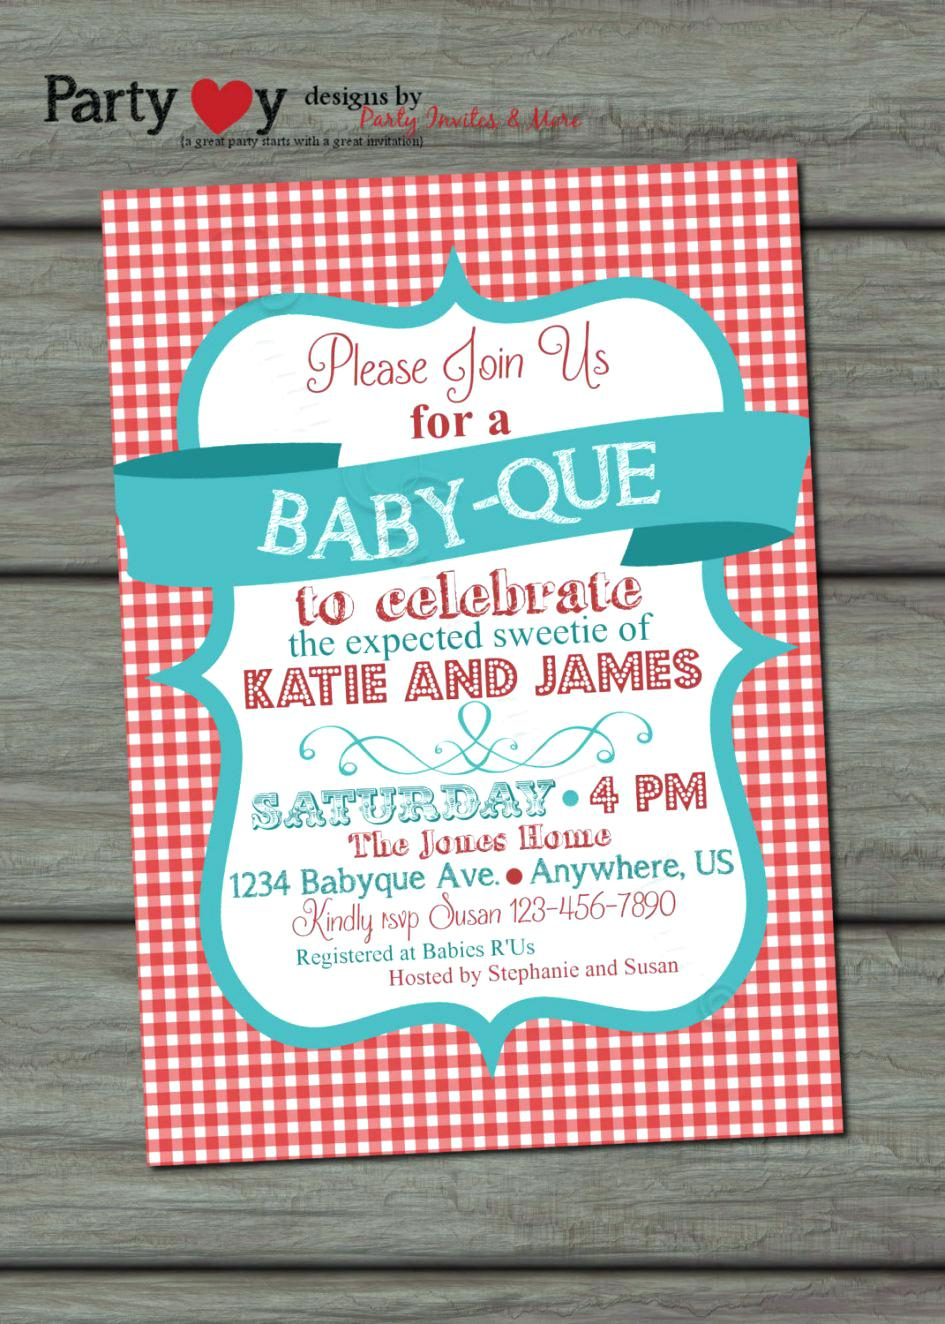 Medium Size of Baby Shower:precious Coed Baby Shower Picture Designs Coed Baby Shower Ideas For Coed Baby Shower Baby Invitations Coed Baby Shower Themes Ideas For Coed Baby Shower Baby Invitations Coed Baby Shower Themes Boy Decor Large Size